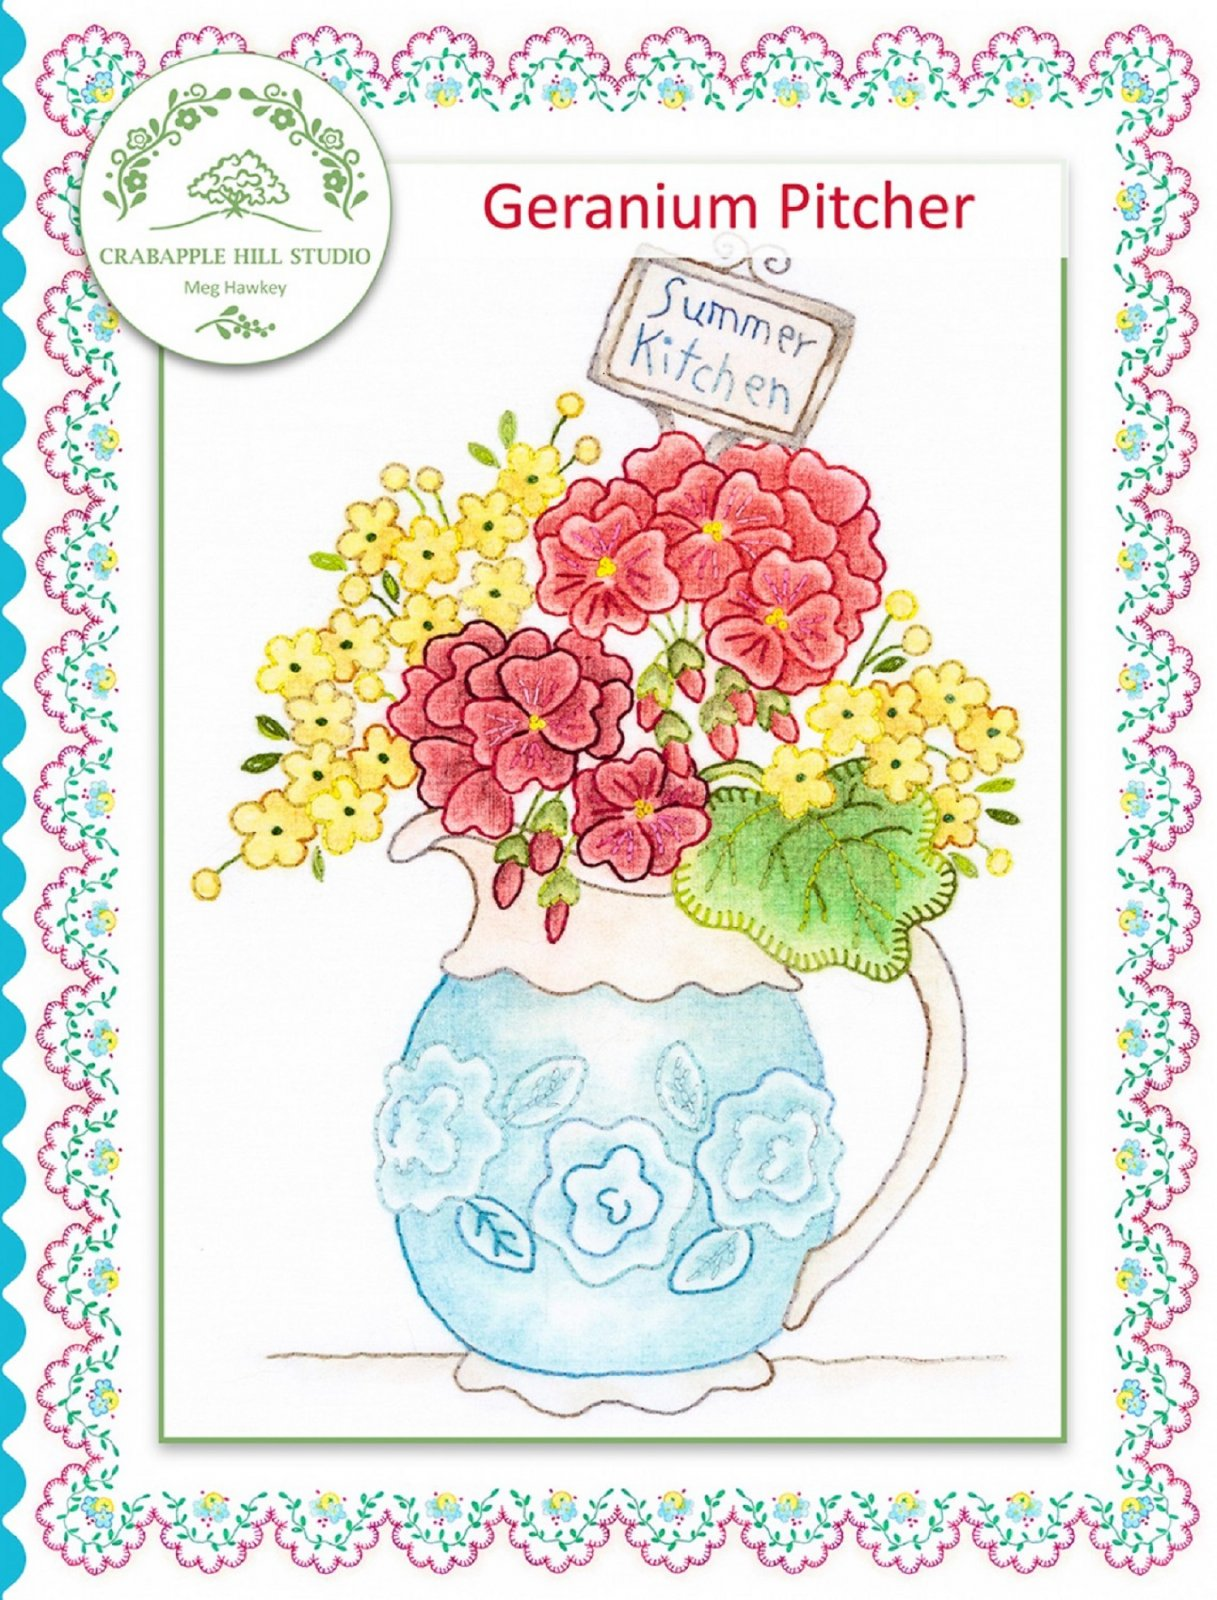 Crabapple Hill - Summer Kitchen Giranium Pitcher Pattern with Cosmos Floss Kit